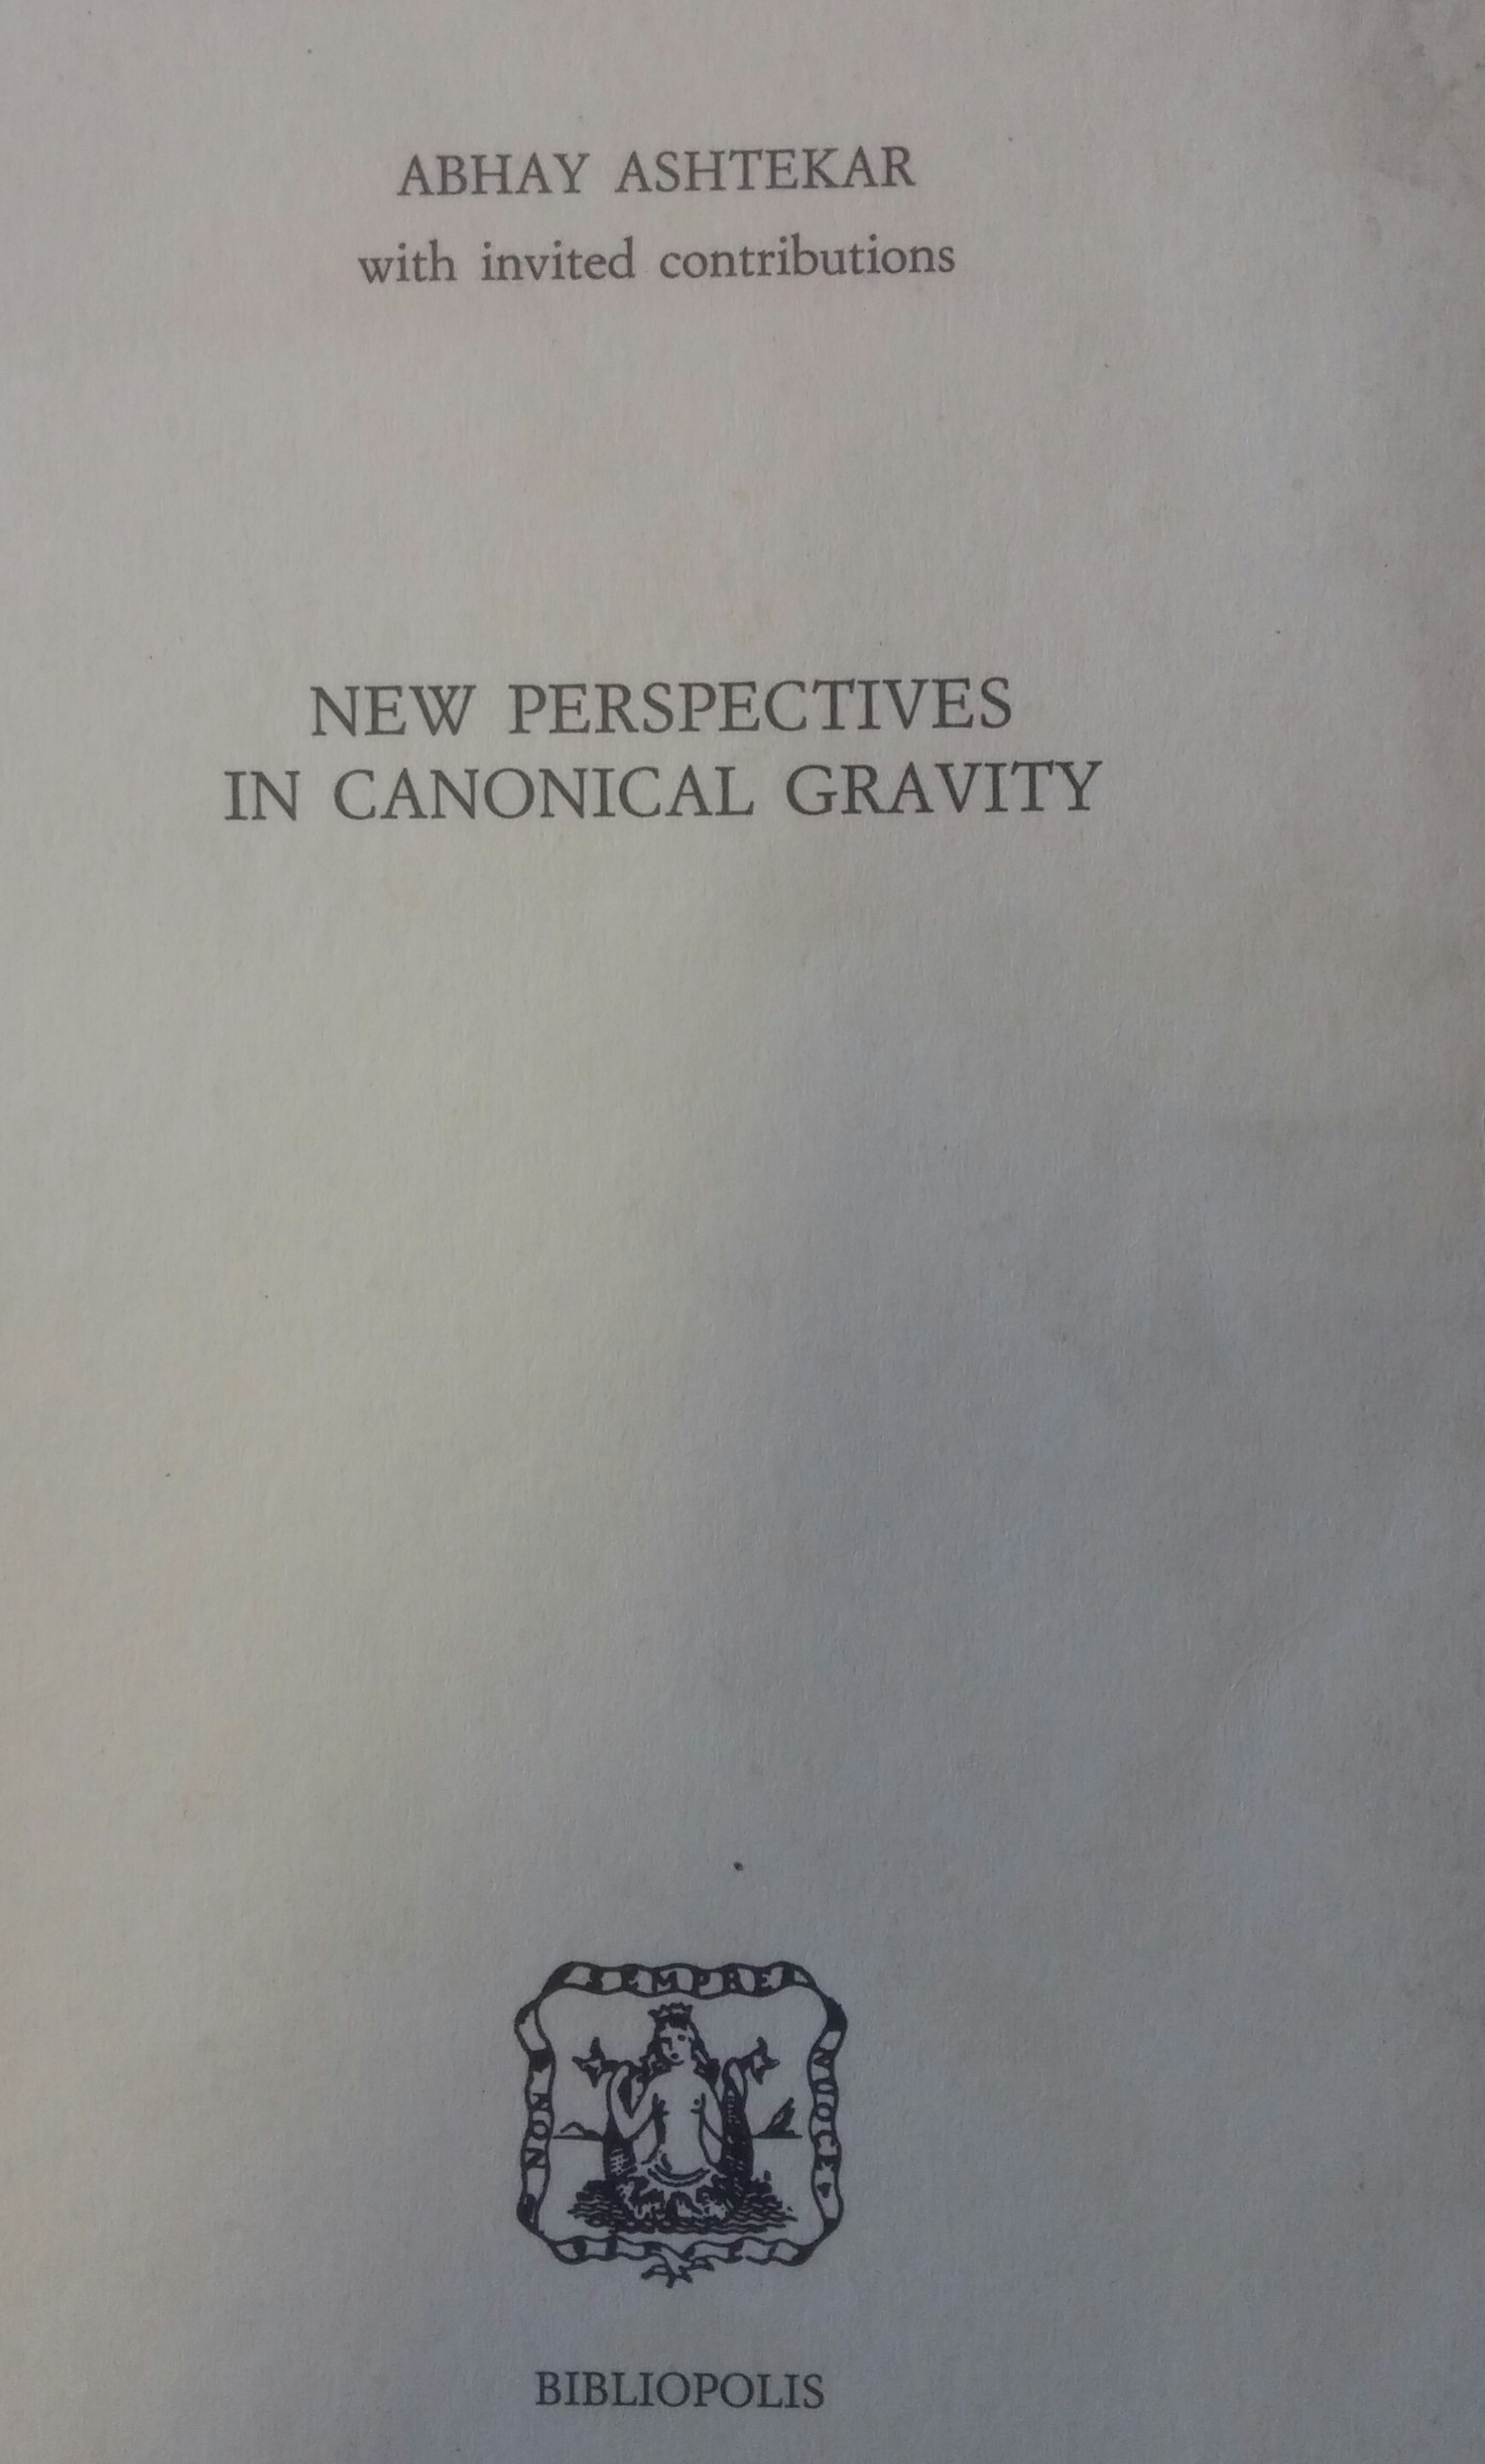 New perspectives in canonical gravity